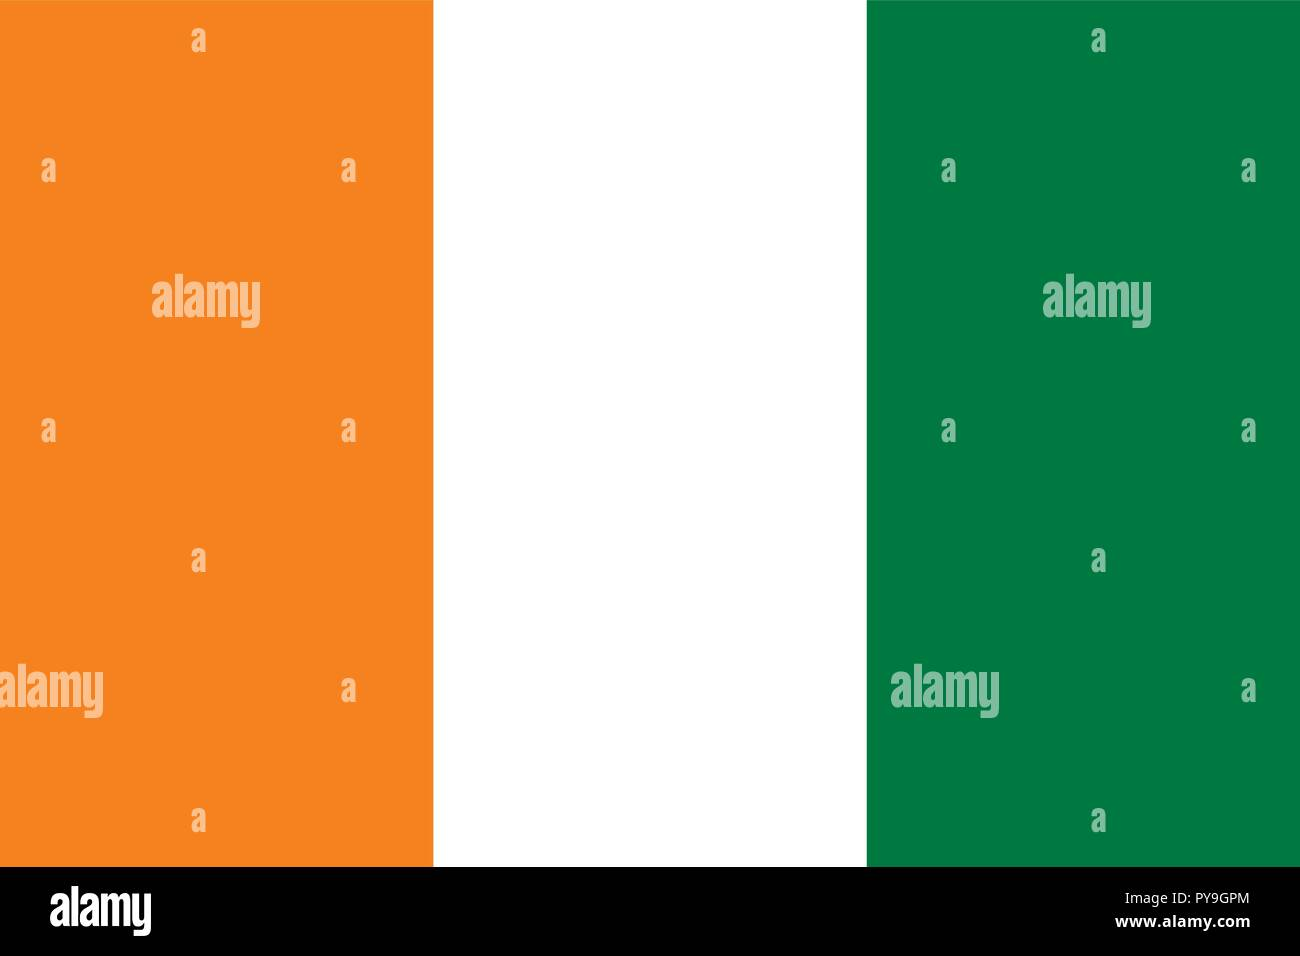 Vector image for Cote d'Ivoire flag. Based on the official and exact Cote d'Ivoire flag dimensions (3:2) & colors (151C, White and 356C) - Stock Vector